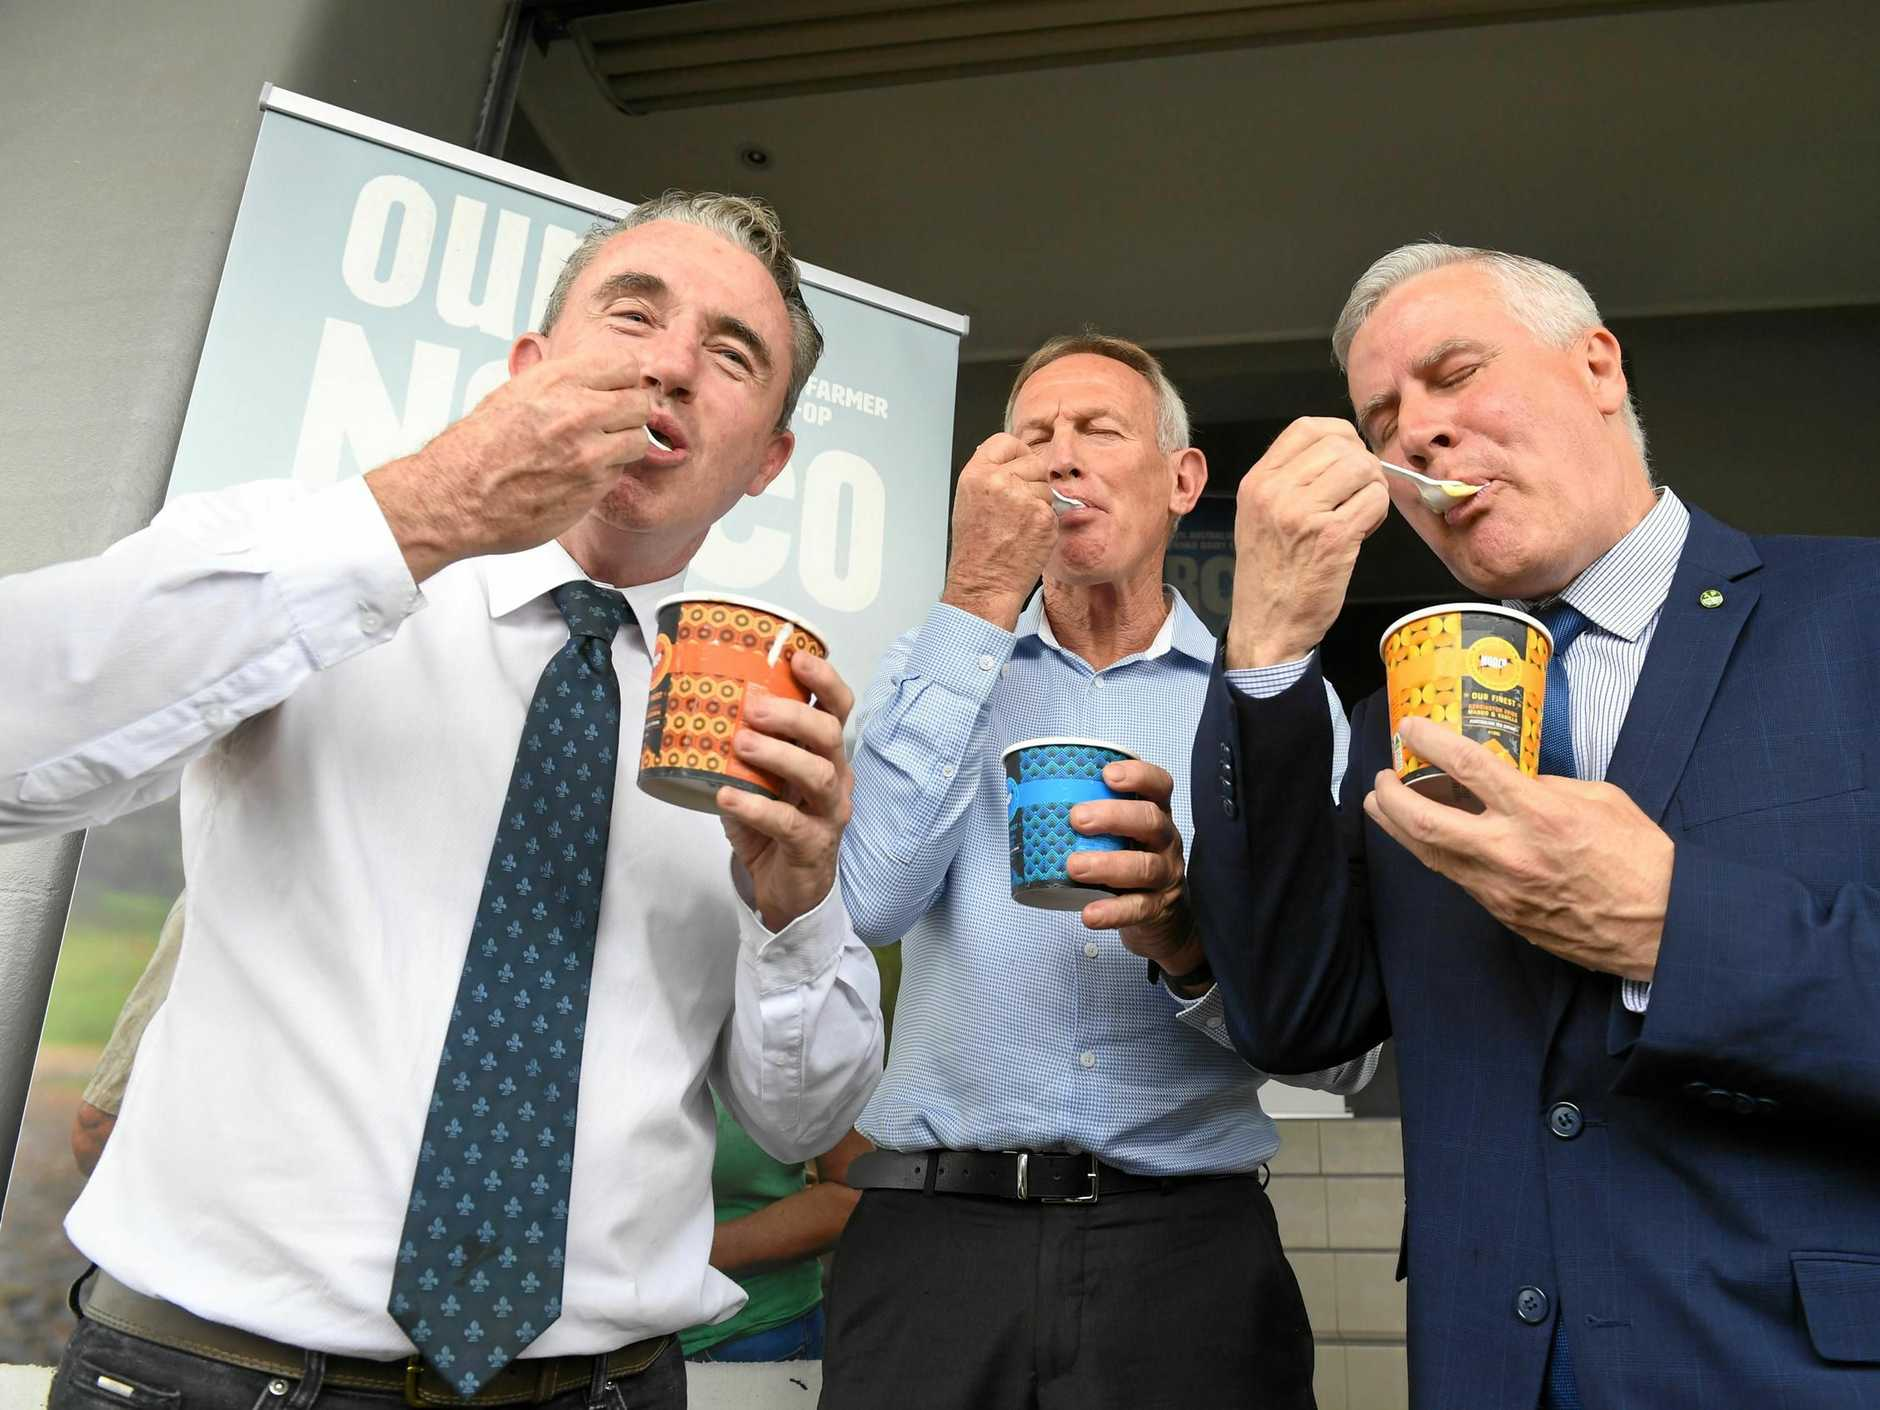 THAT'S GOOD: Federal Member for Page Kevin Hogan is joined by the Deputy Prime Minister Michael McCormack and Acting CEO of Norco Greg McNamara to announce an expansion worth $10s of millions for the Norco Ice-cream Facility in Lismore.